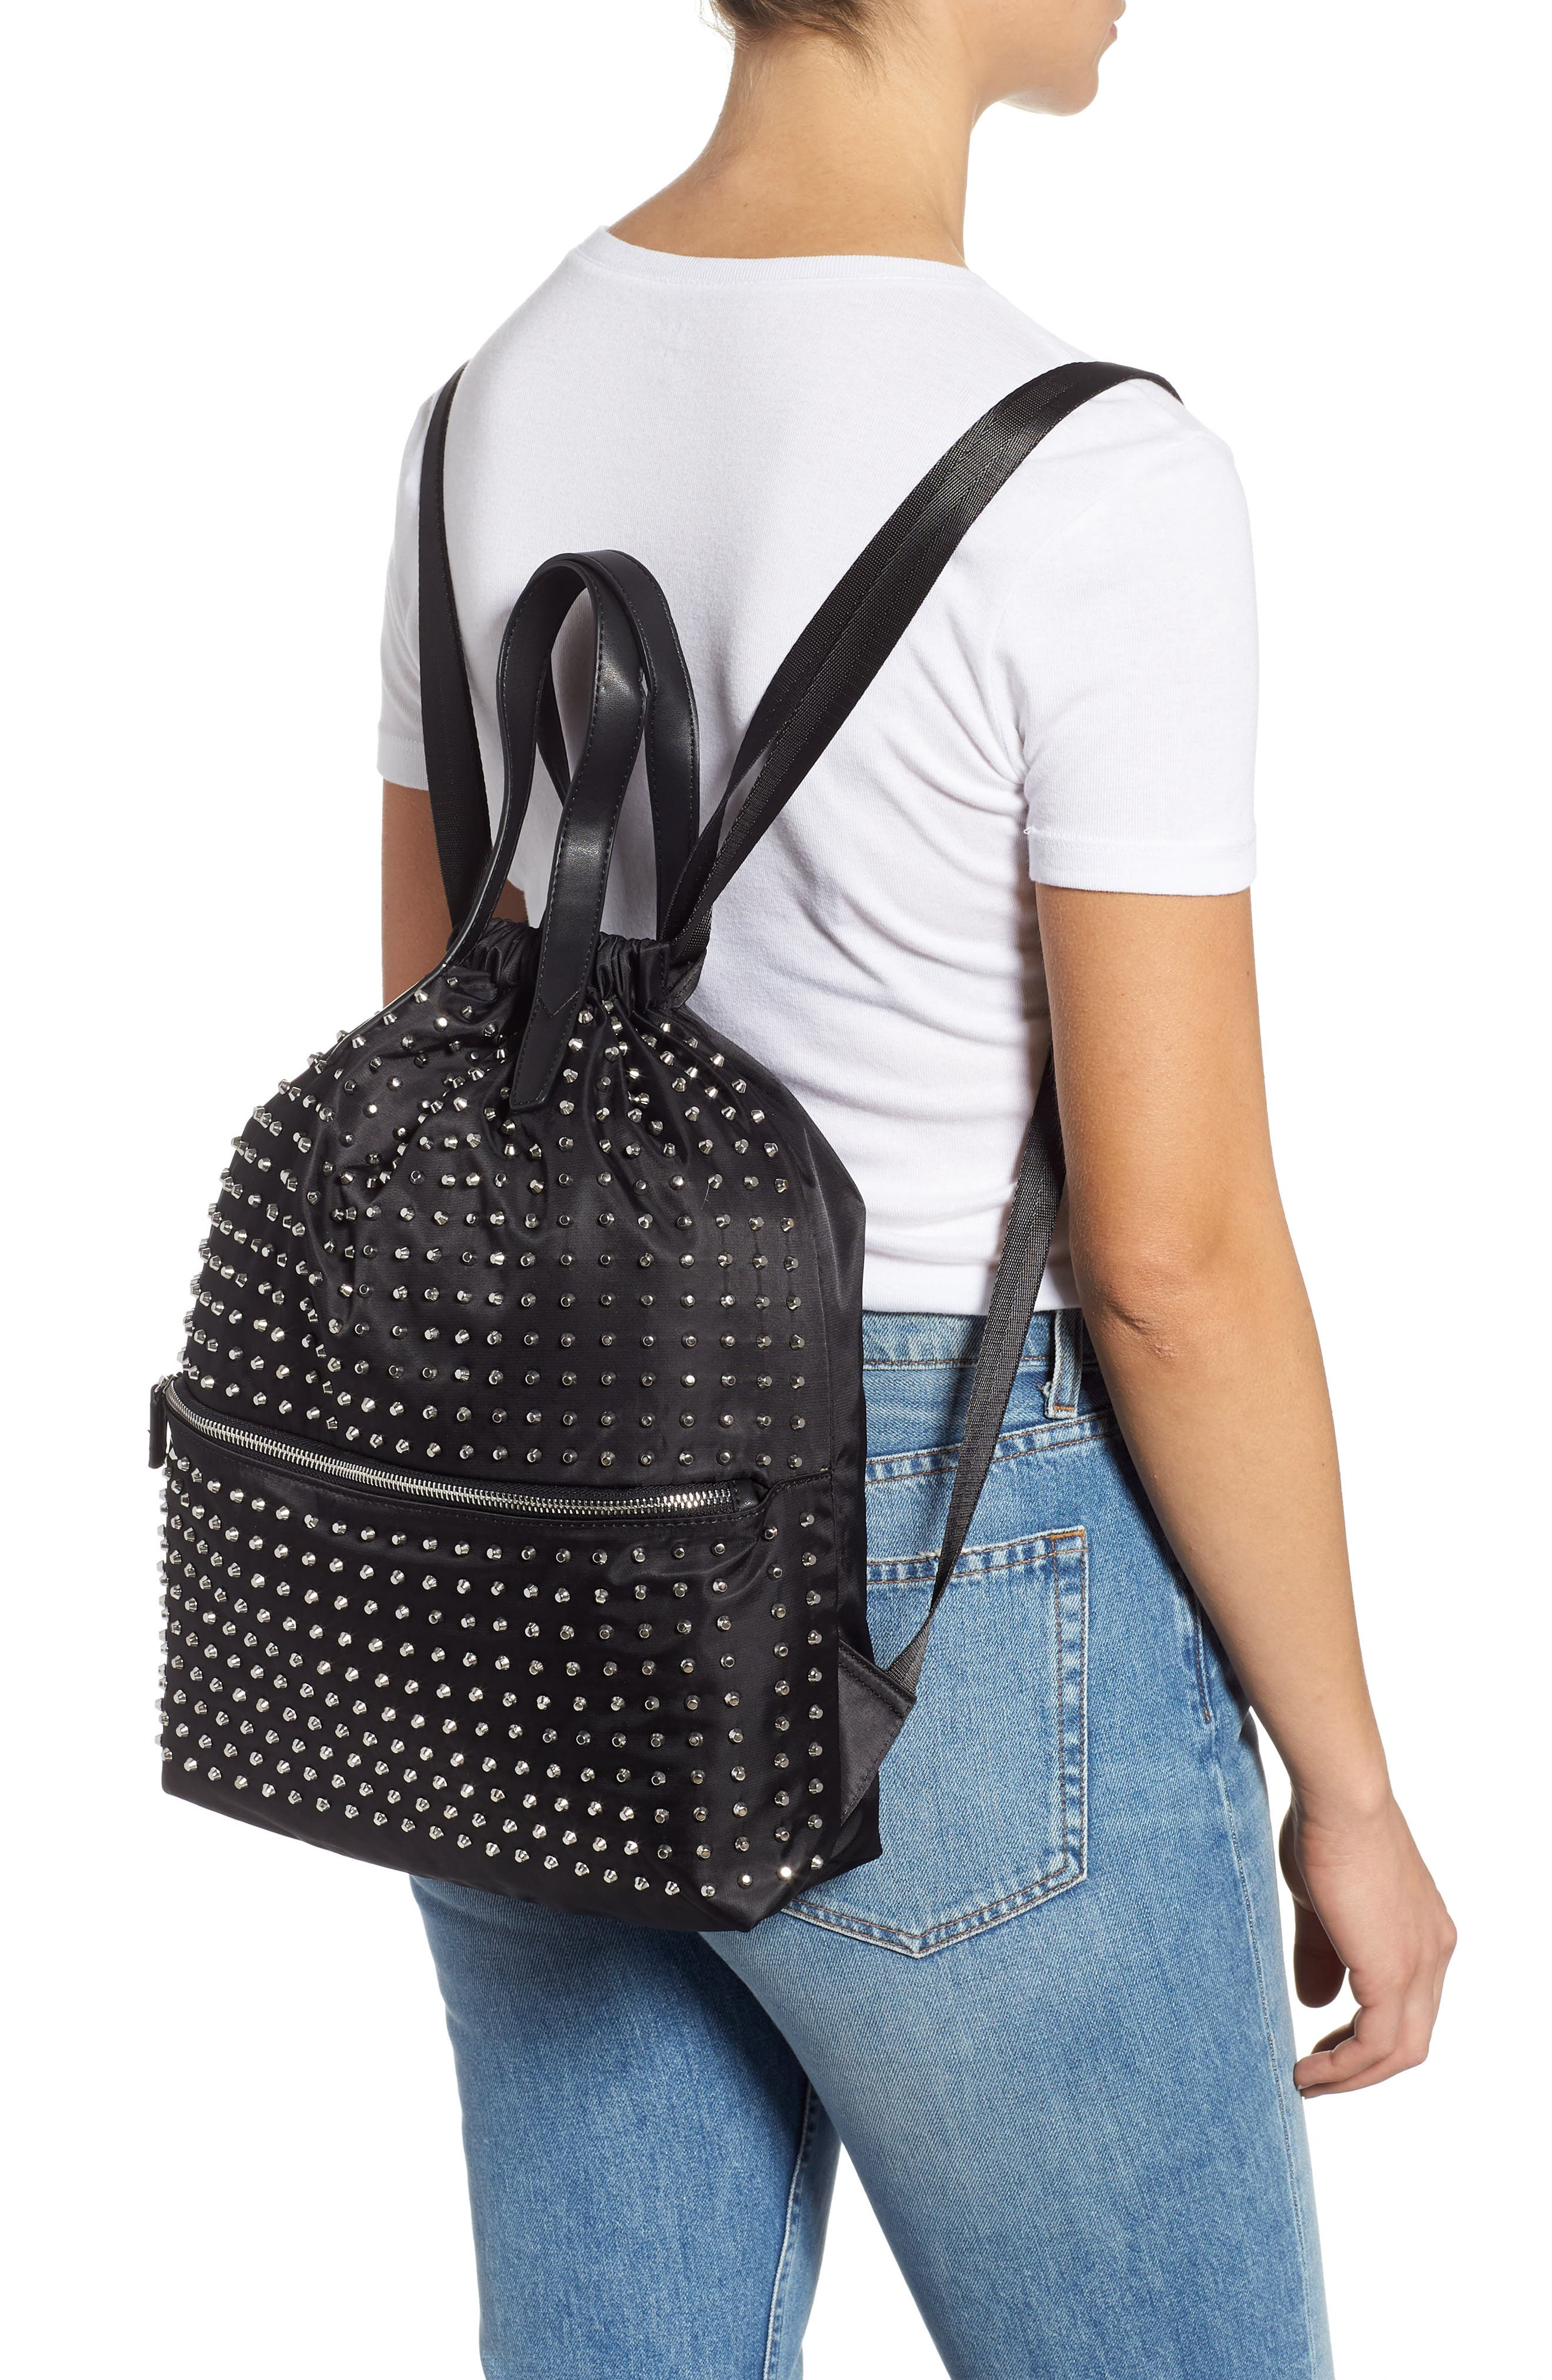 Tokyo Studded Backpack,                             Alternate thumbnail 2, color,                             001